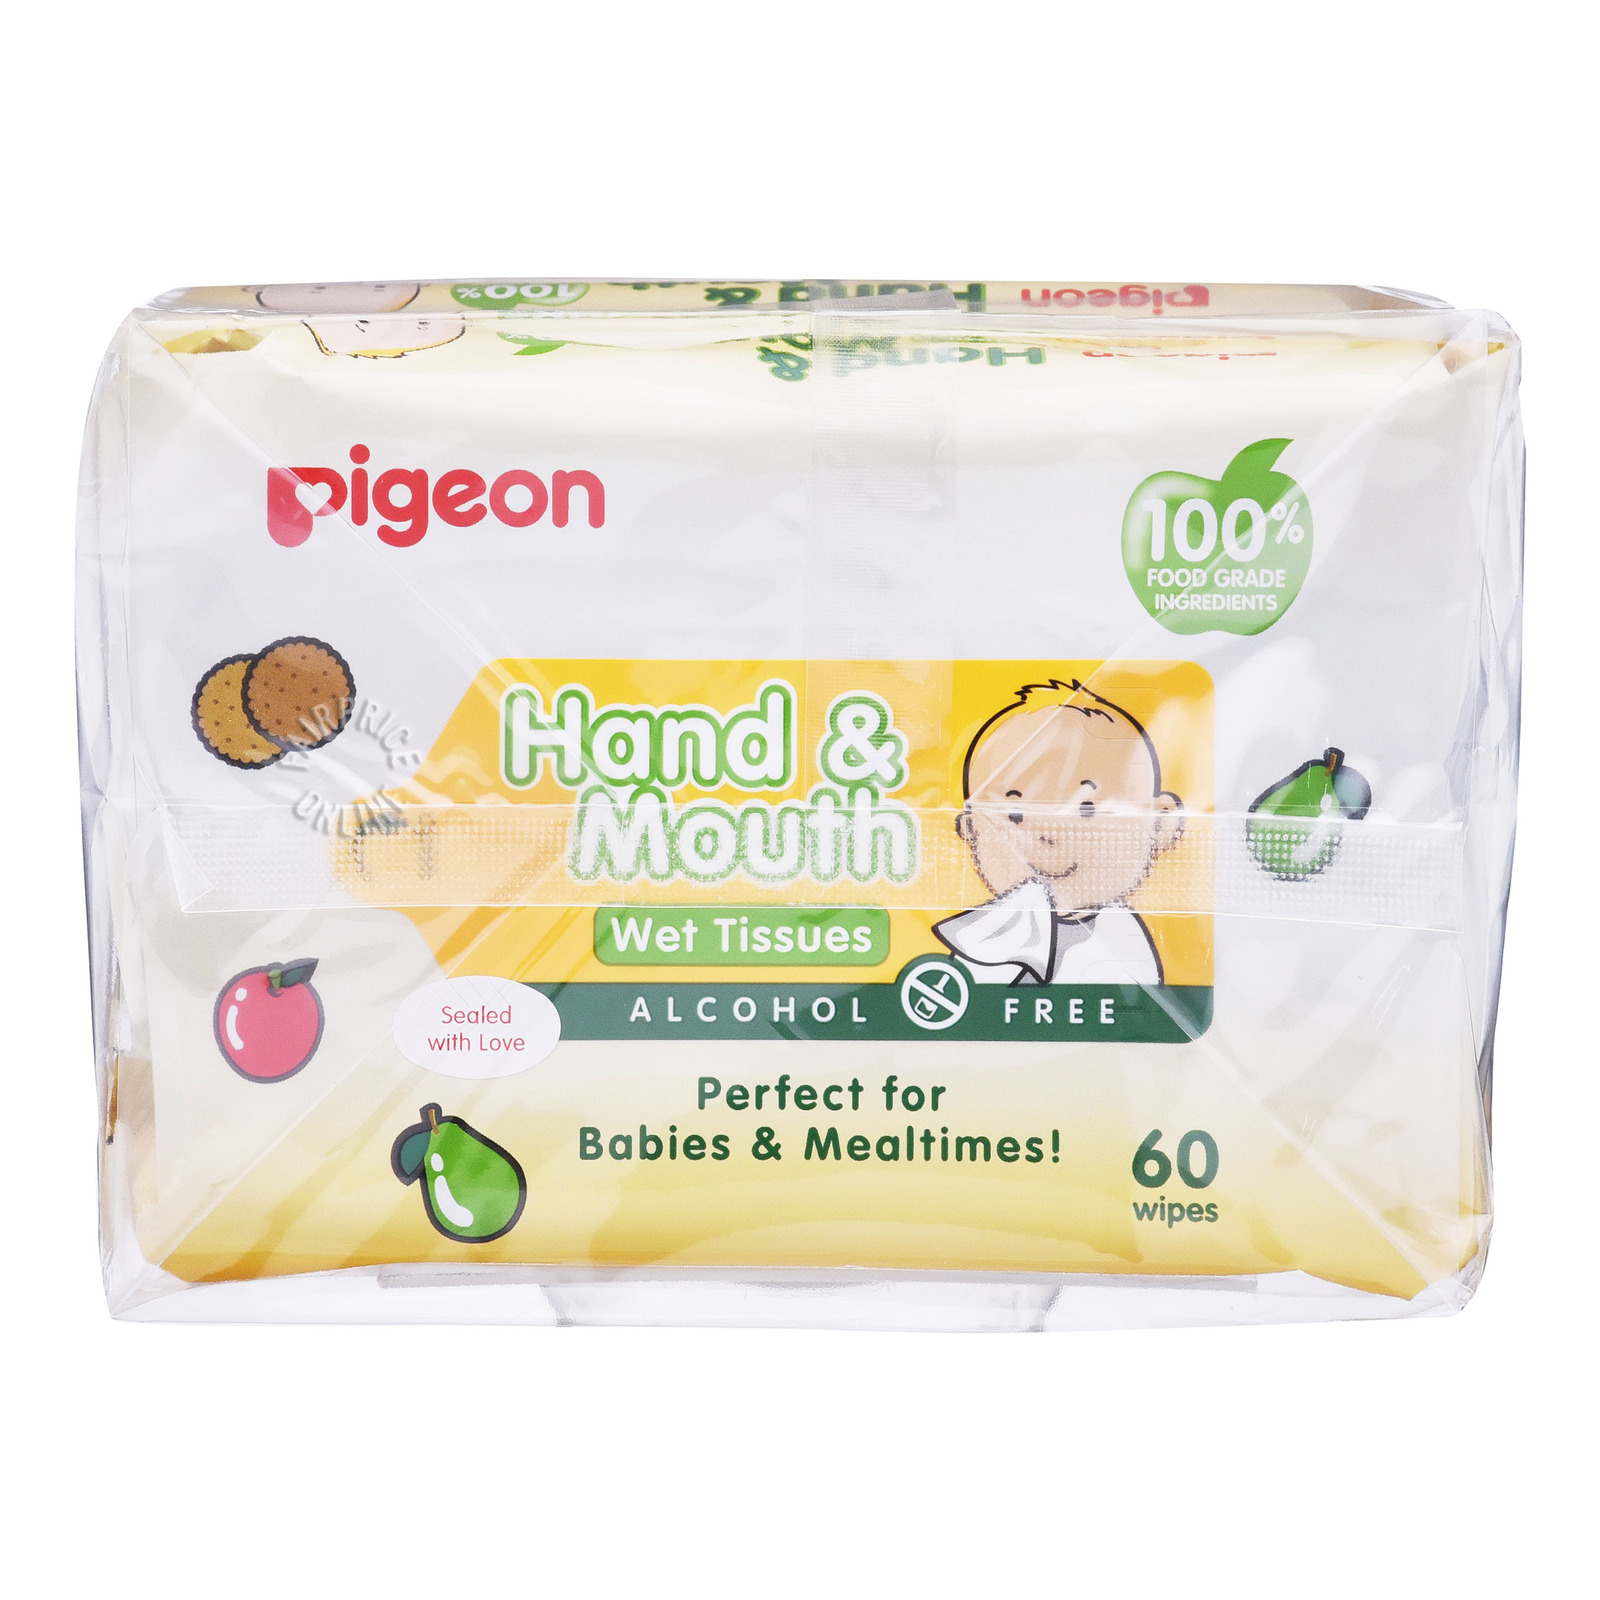 Pigeon Baby Wet Tissues - Hand & Mouth